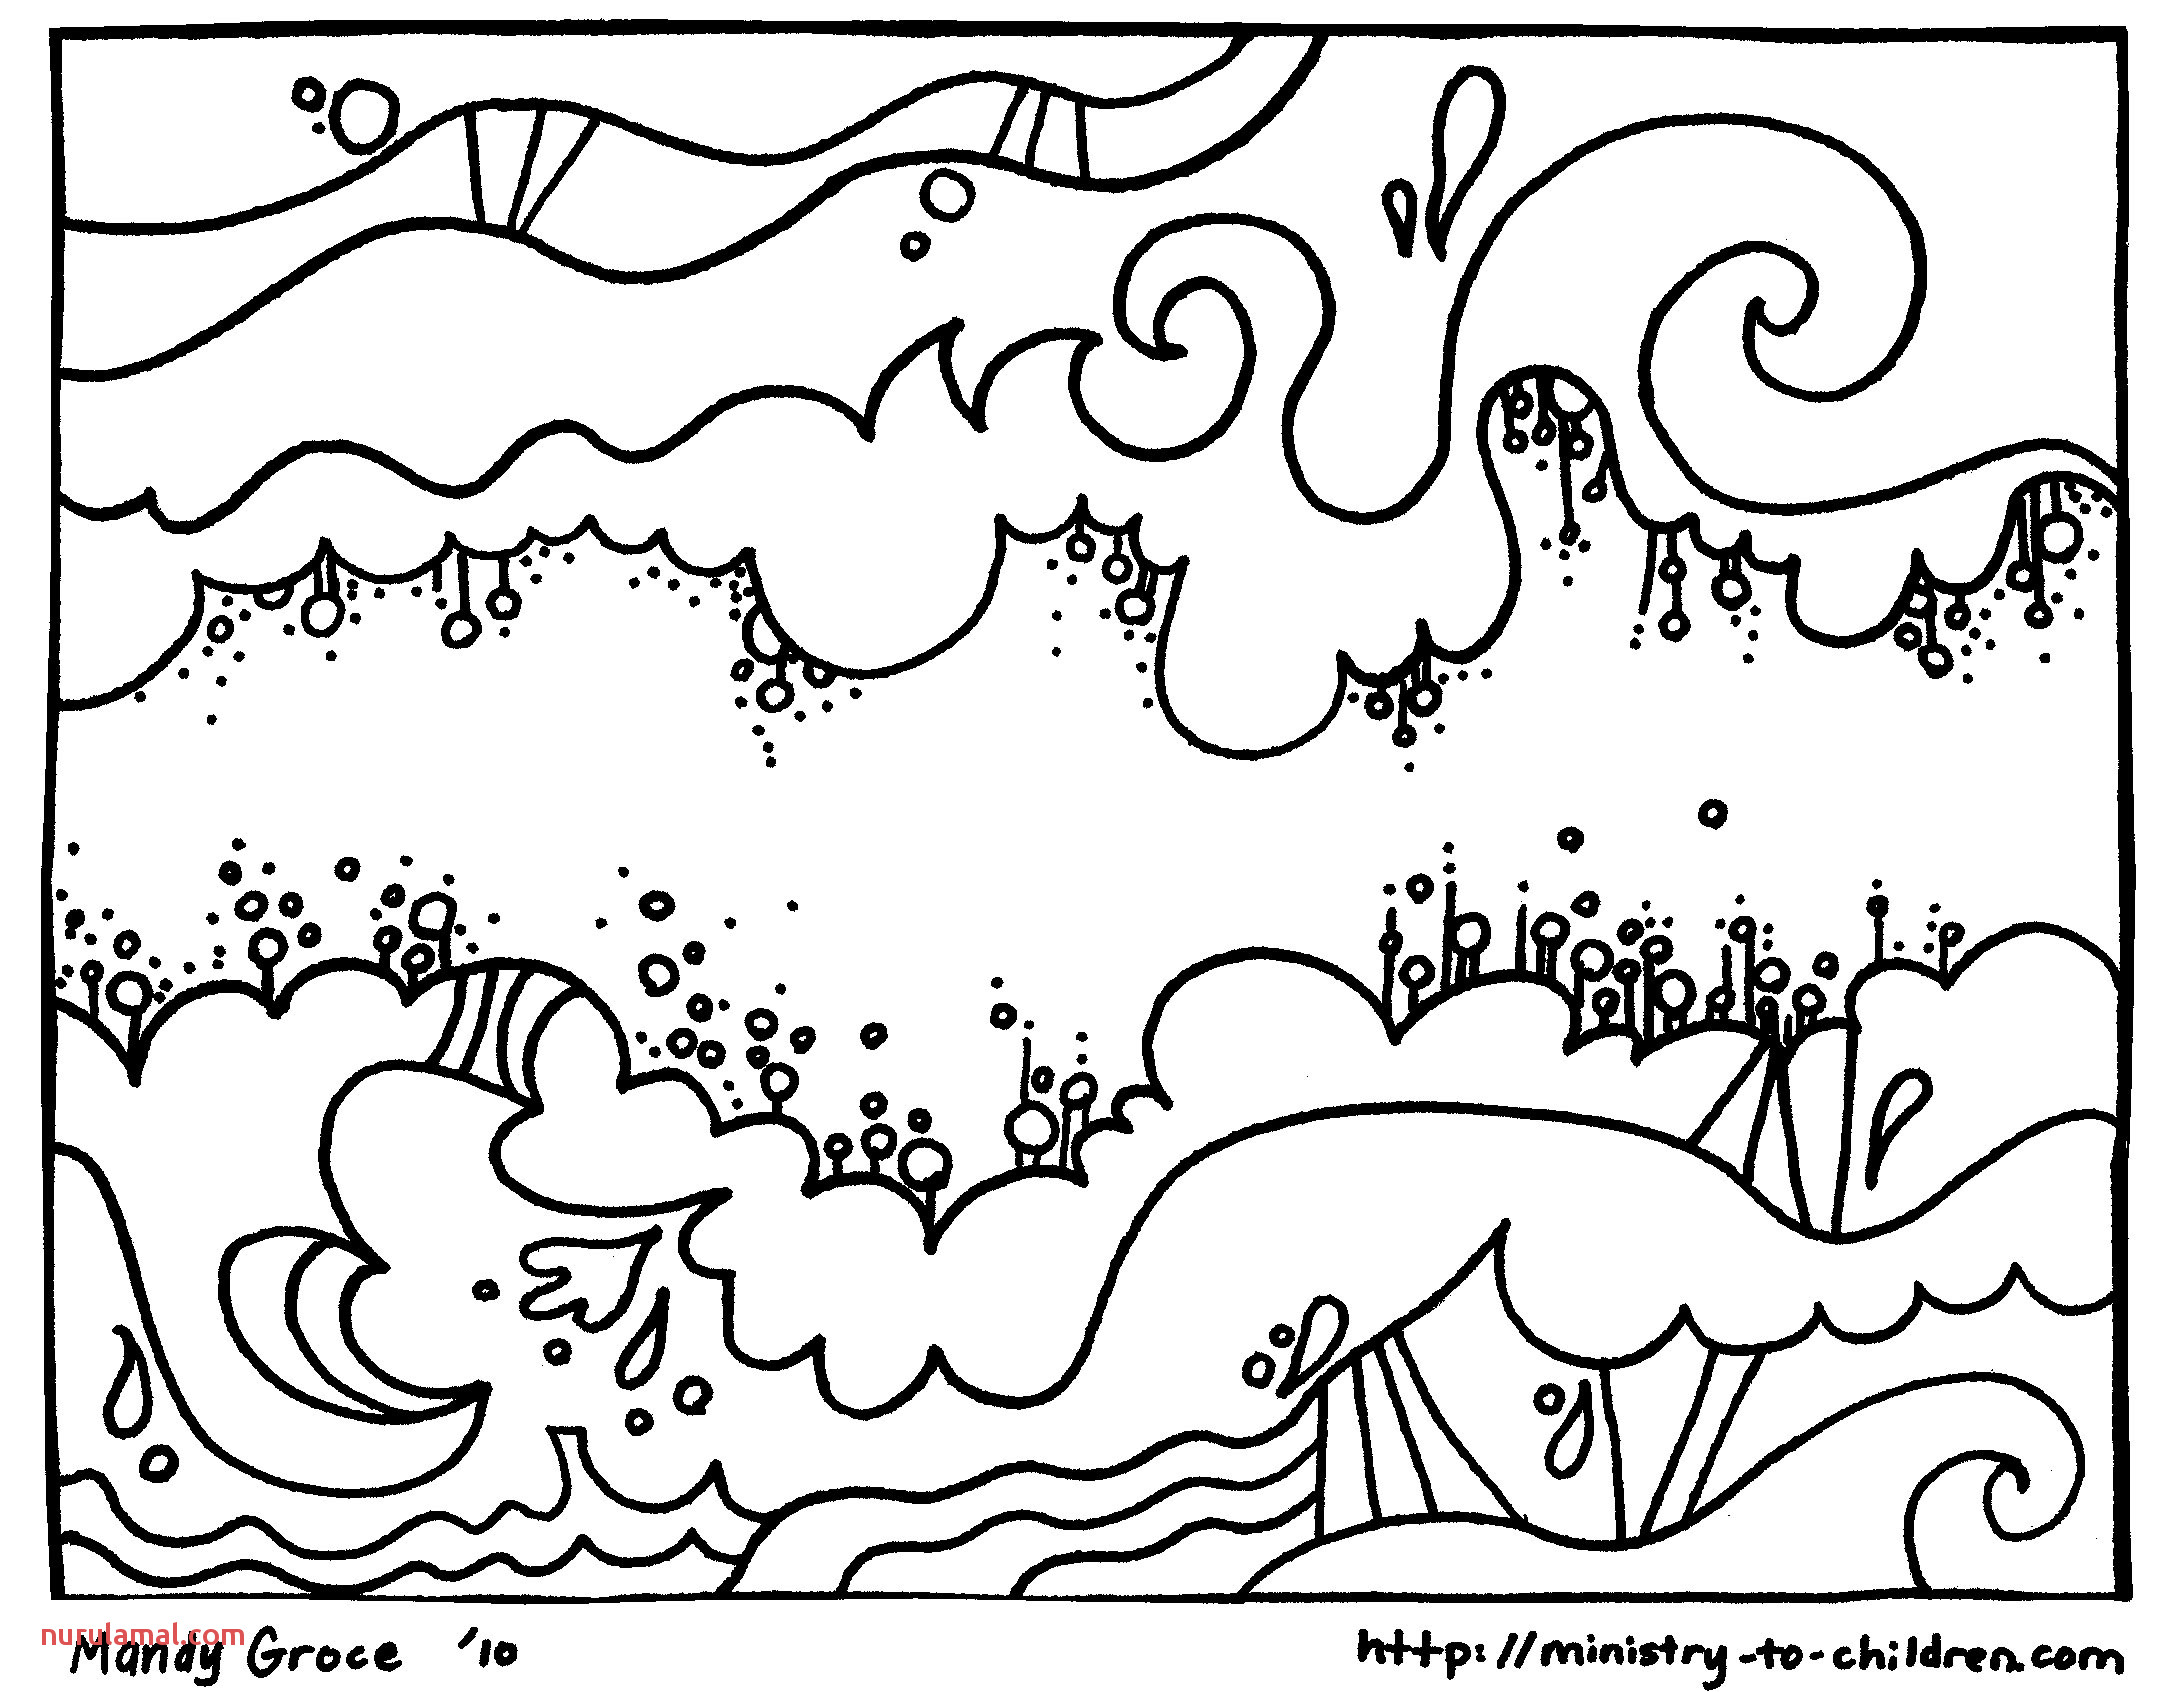 Coloring Pages Sky Coloring at Getdrawings Free for